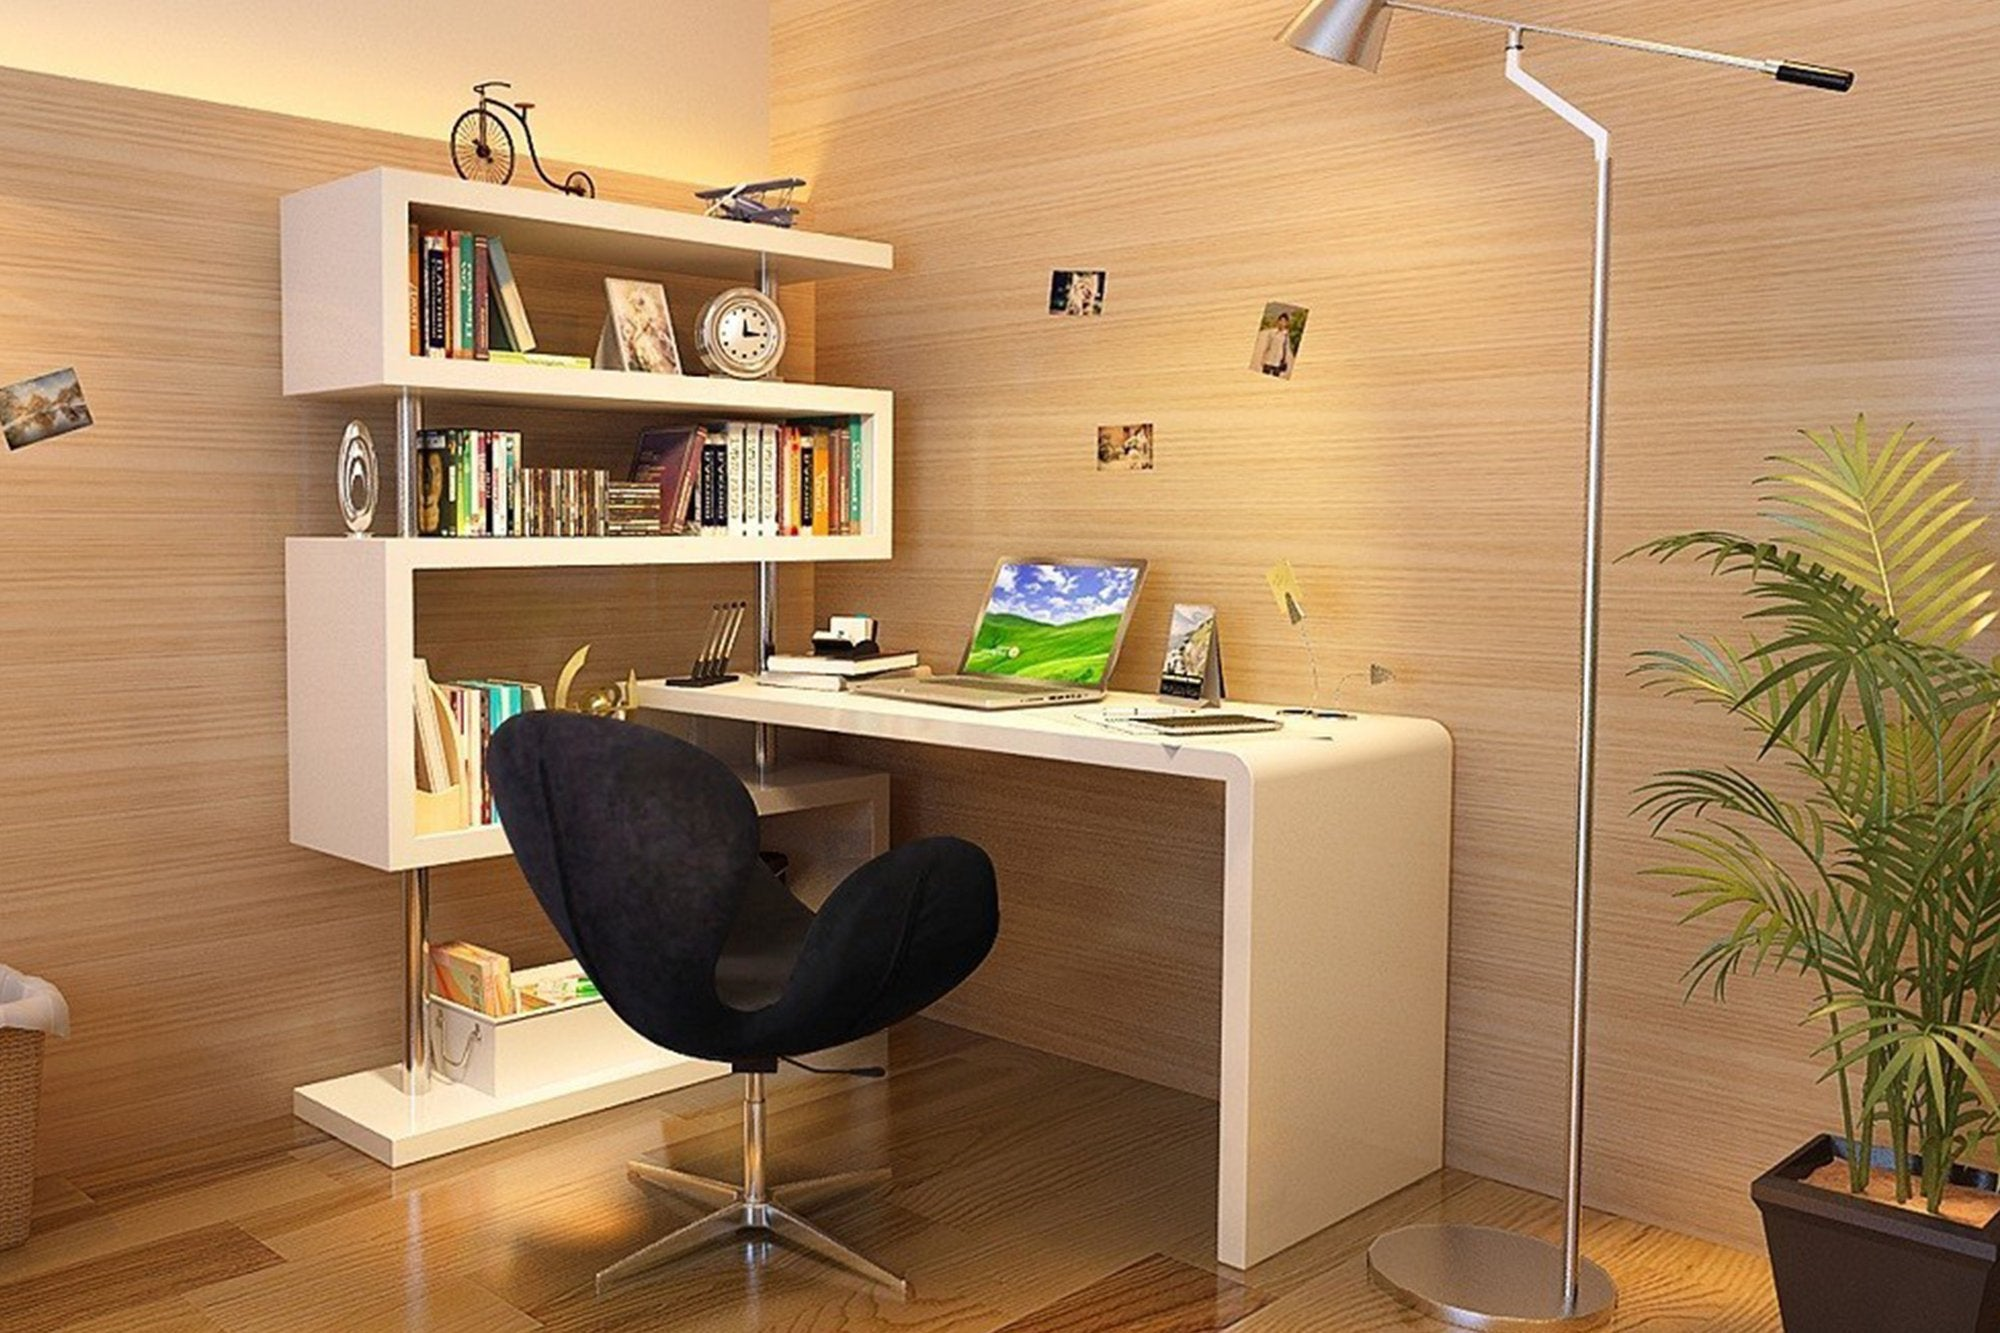 The ideal home office begins with choosing the right desk.